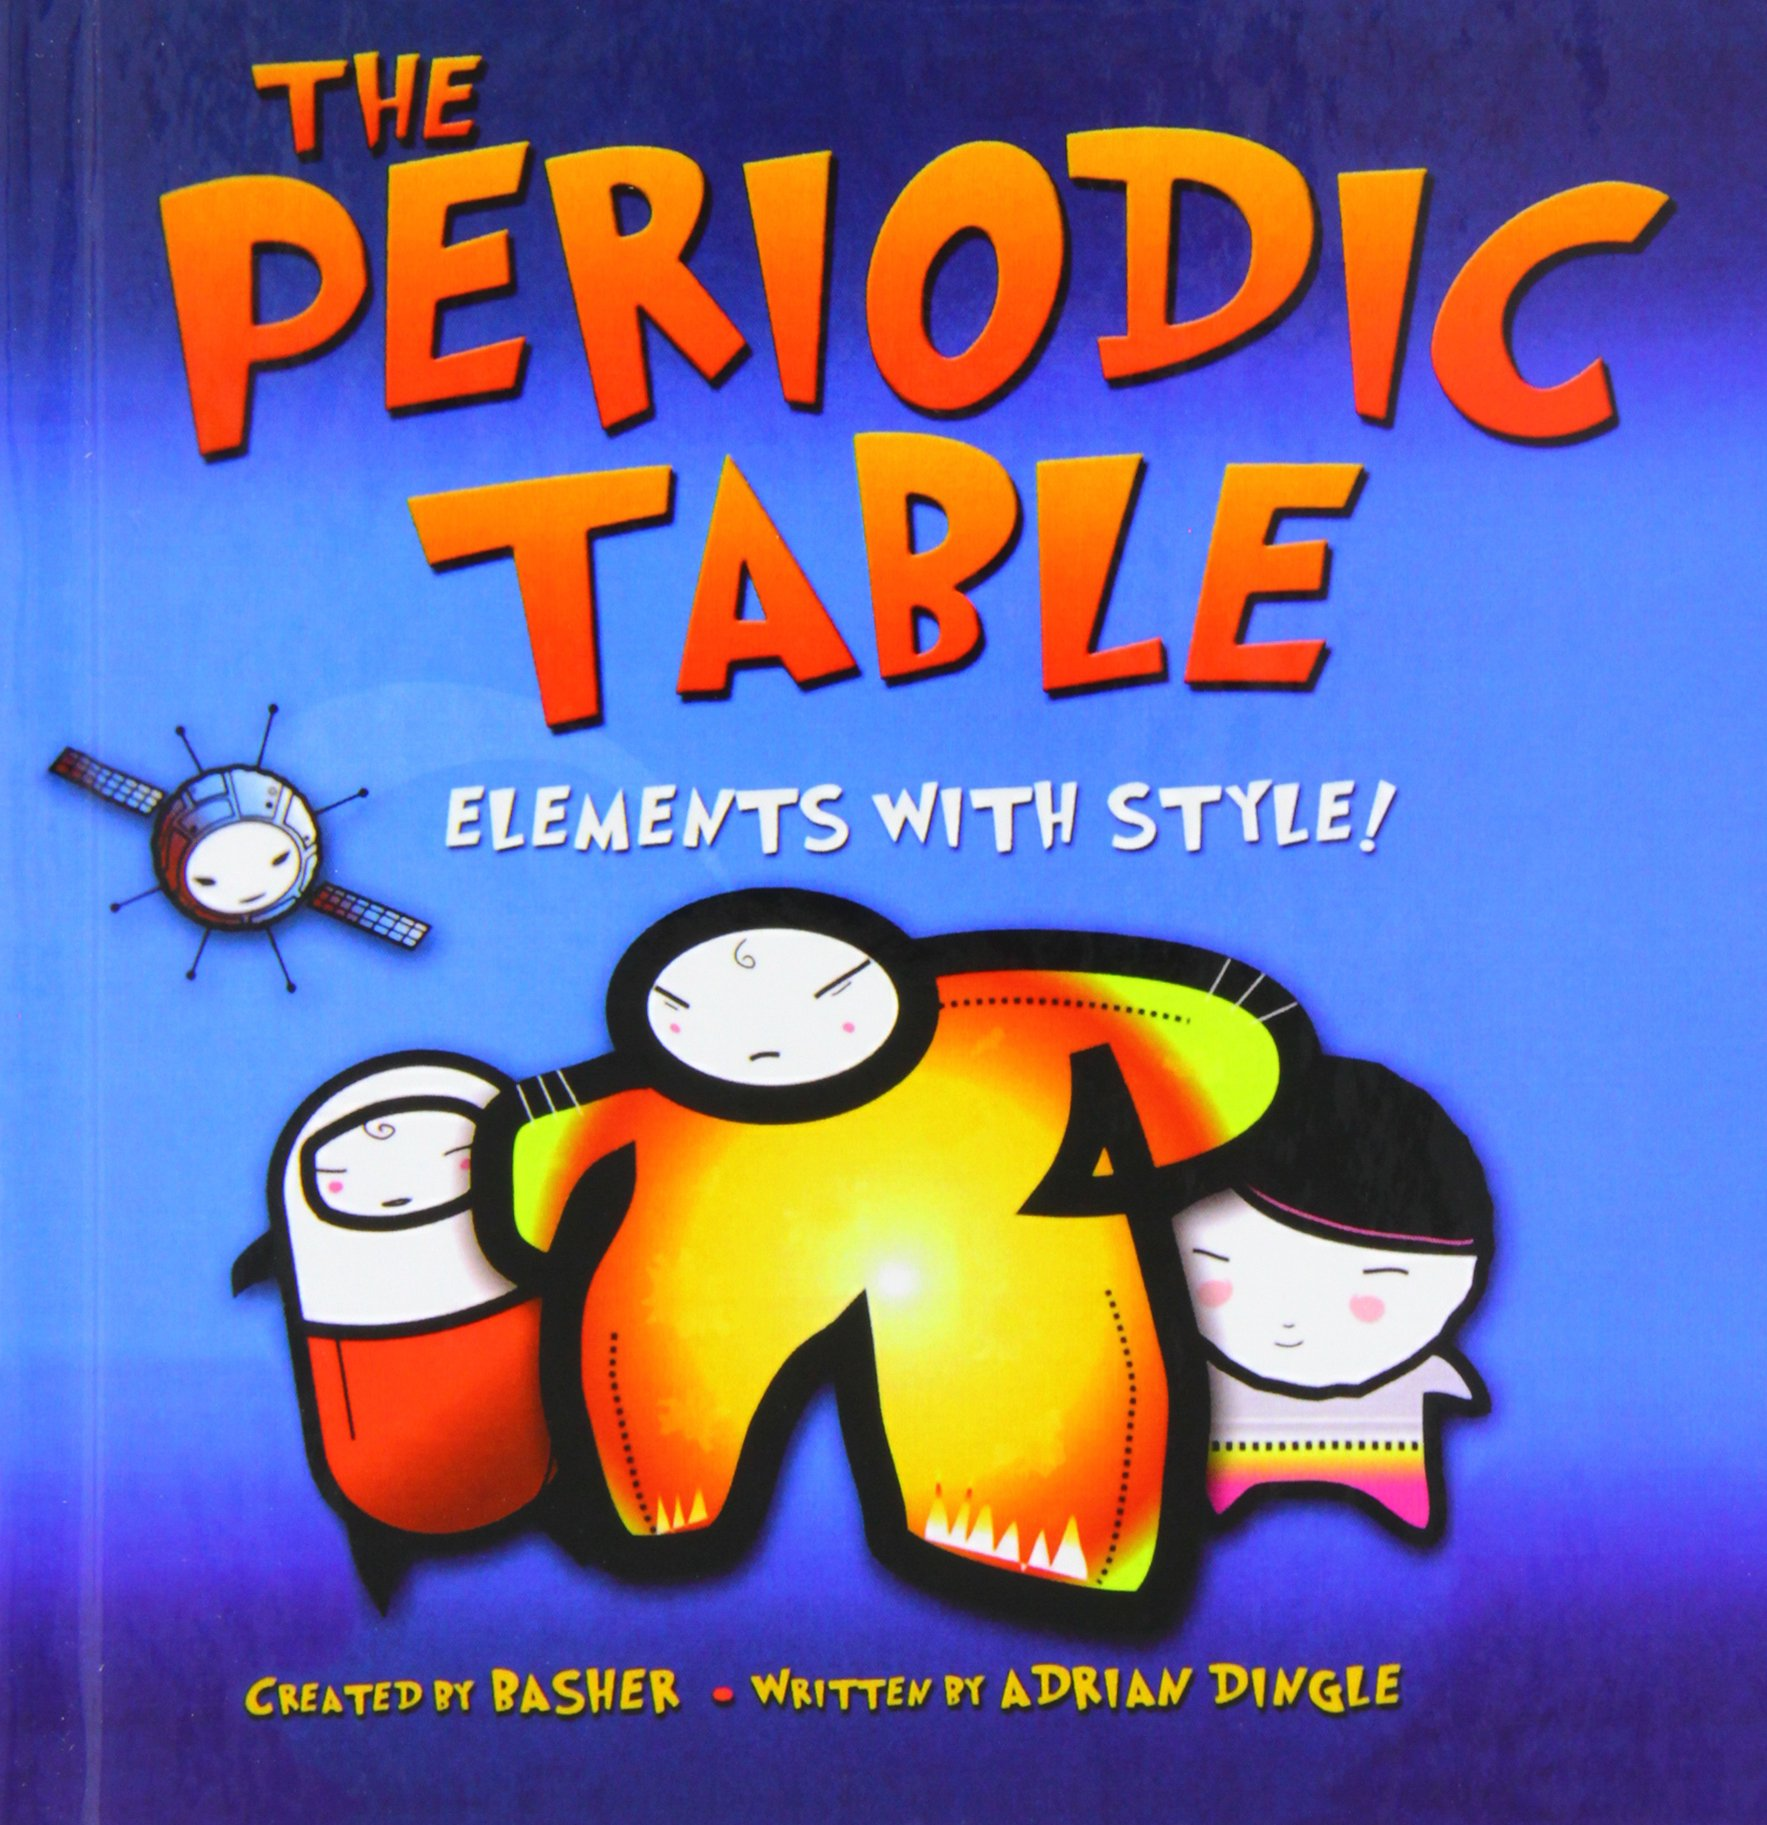 The periodic table elements with style adrian dingle simon the periodic table elements with style adrian dingle simon basher 9781435228122 amazon books gamestrikefo Gallery